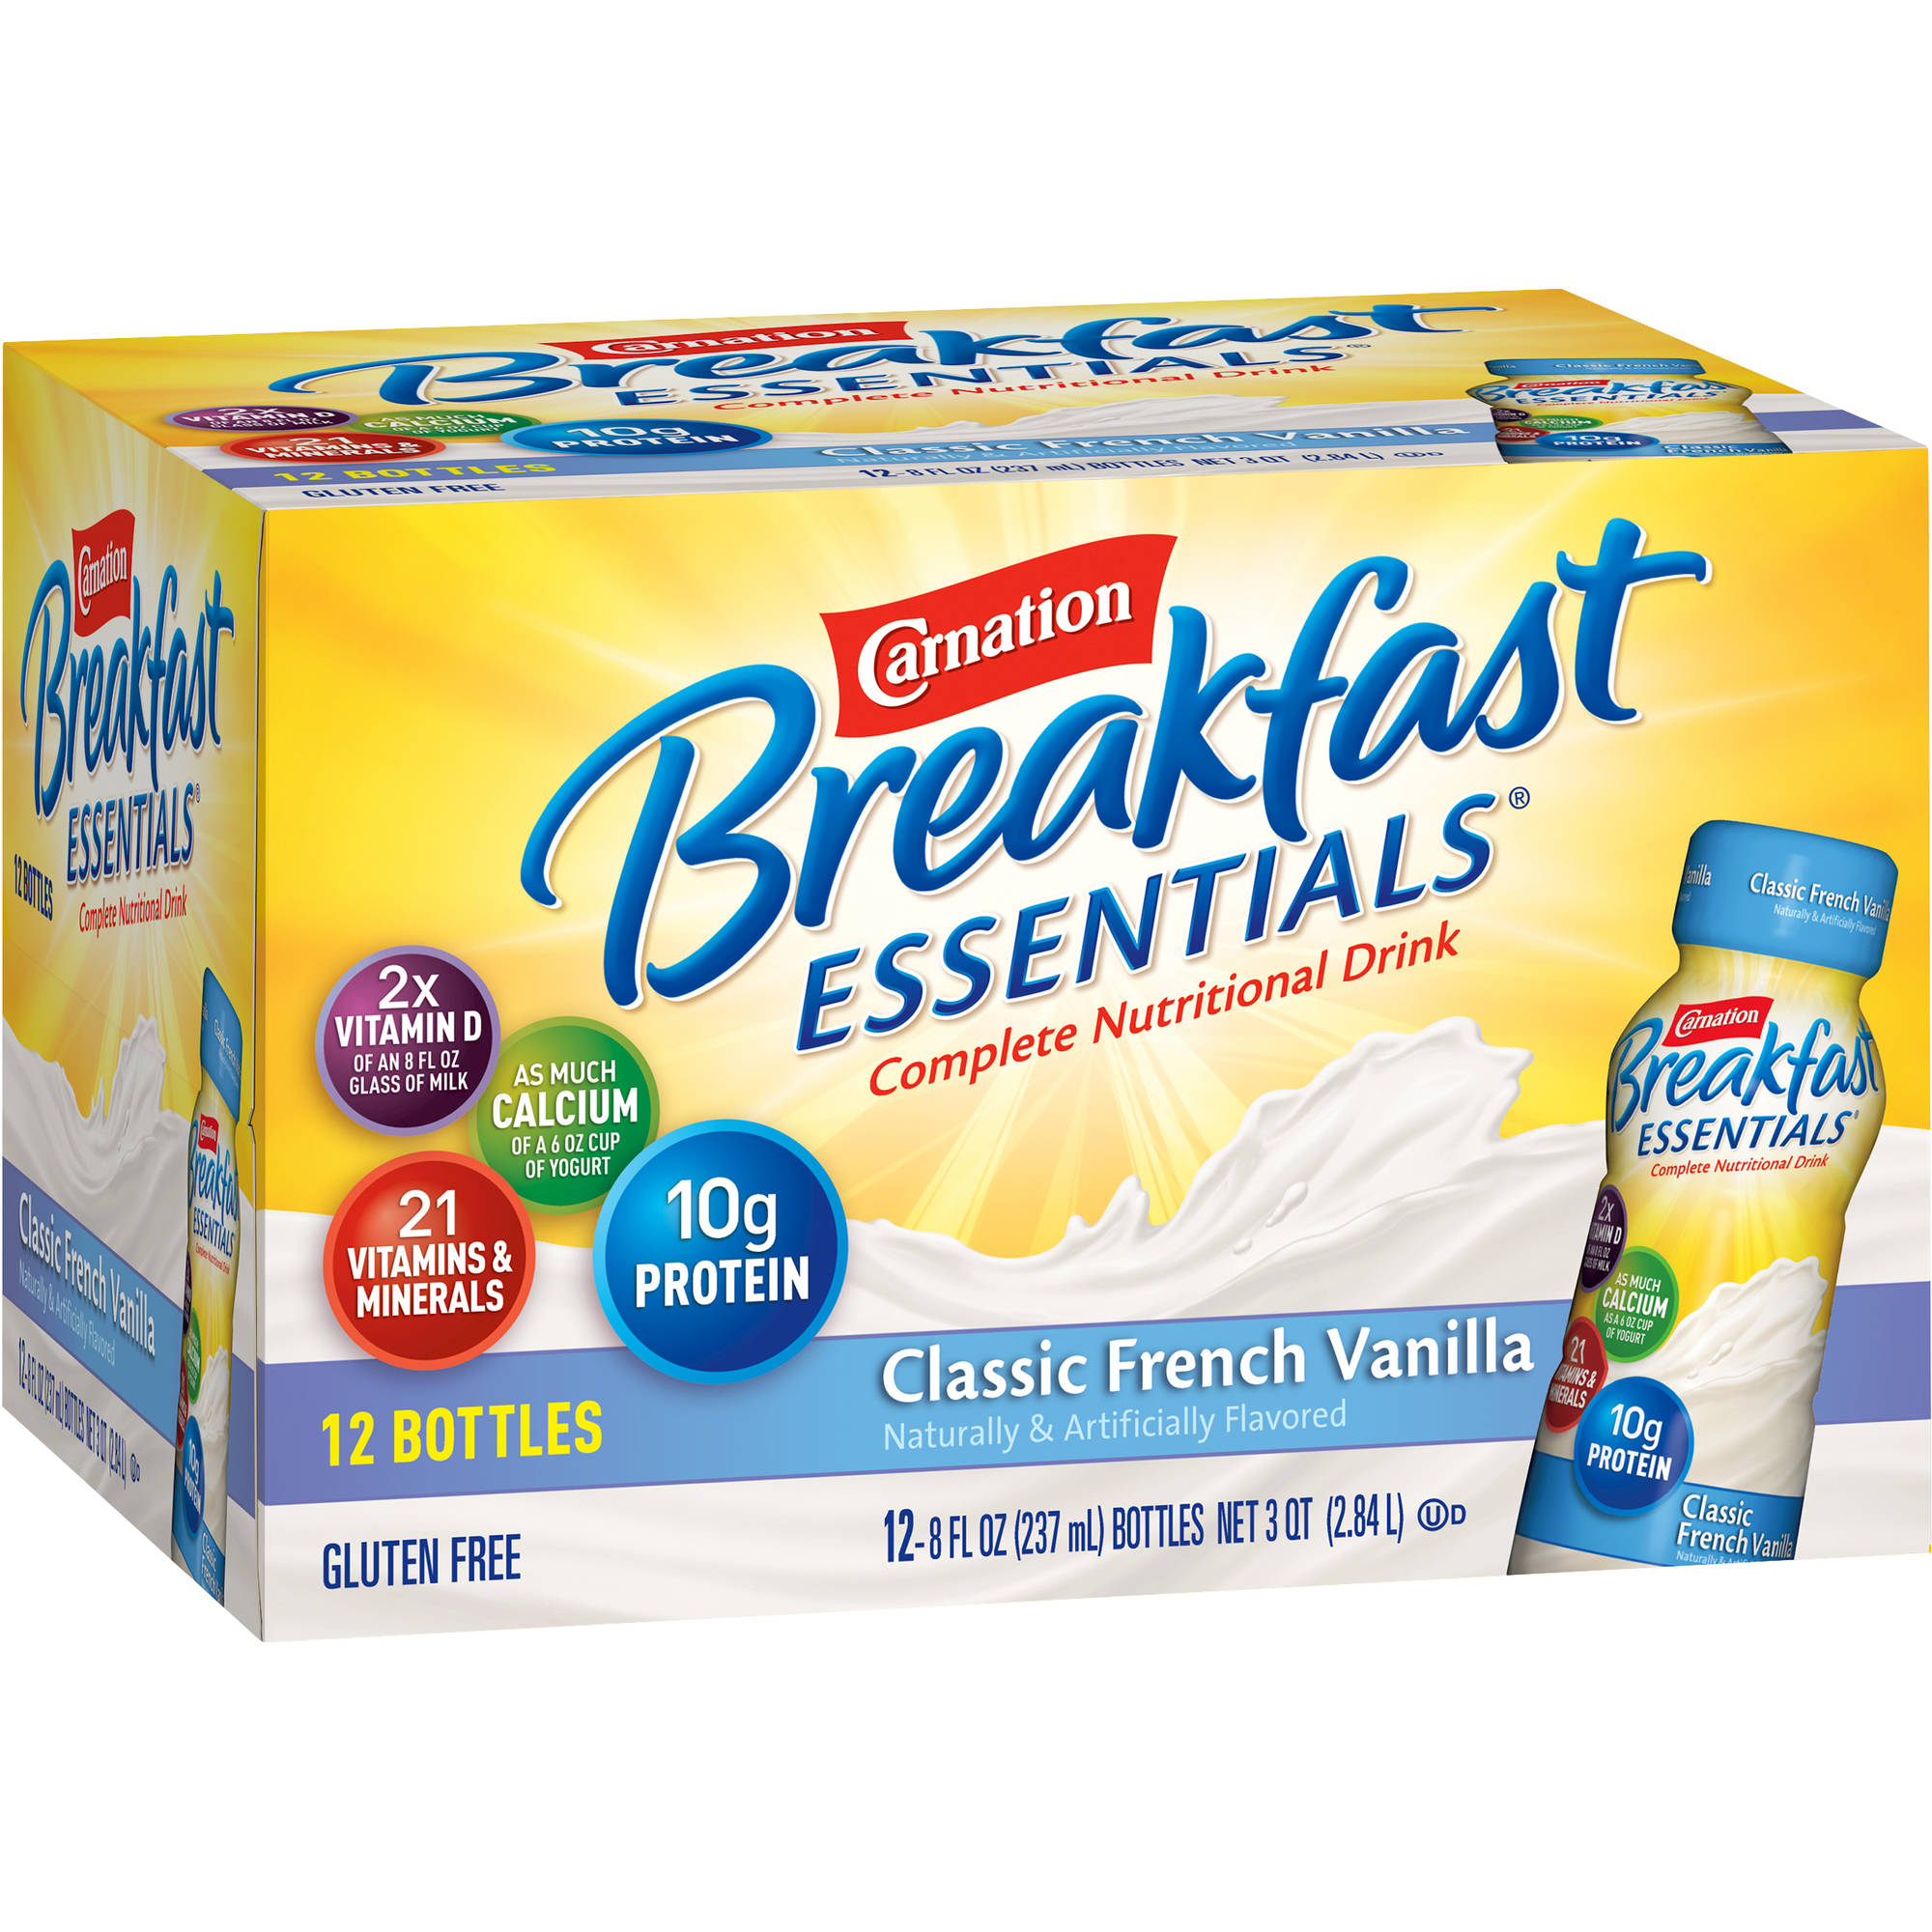 Carnation Breakfast Essentials Classic French Vanilla Complete Nutritional Drink, 8 fl oz, 12 count